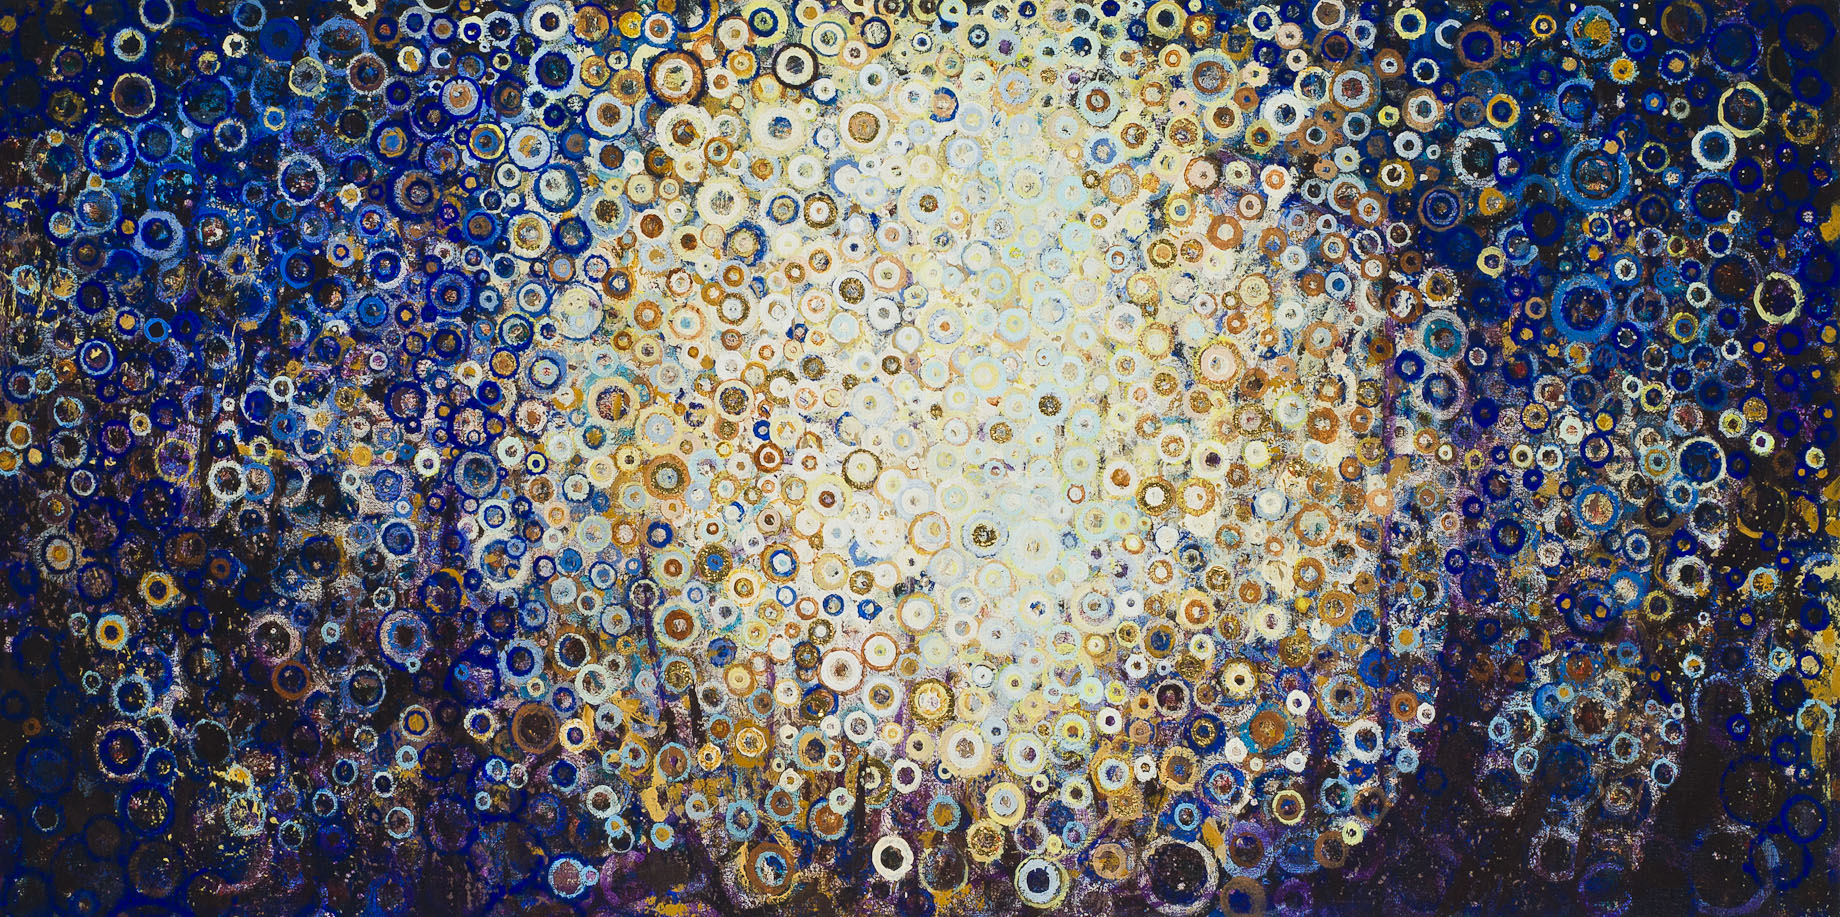 """Near,"" by Randall Stoltzfus, 2013, oil and acrylic dispersion with gold leaf on linen, 20 by 40 inches"